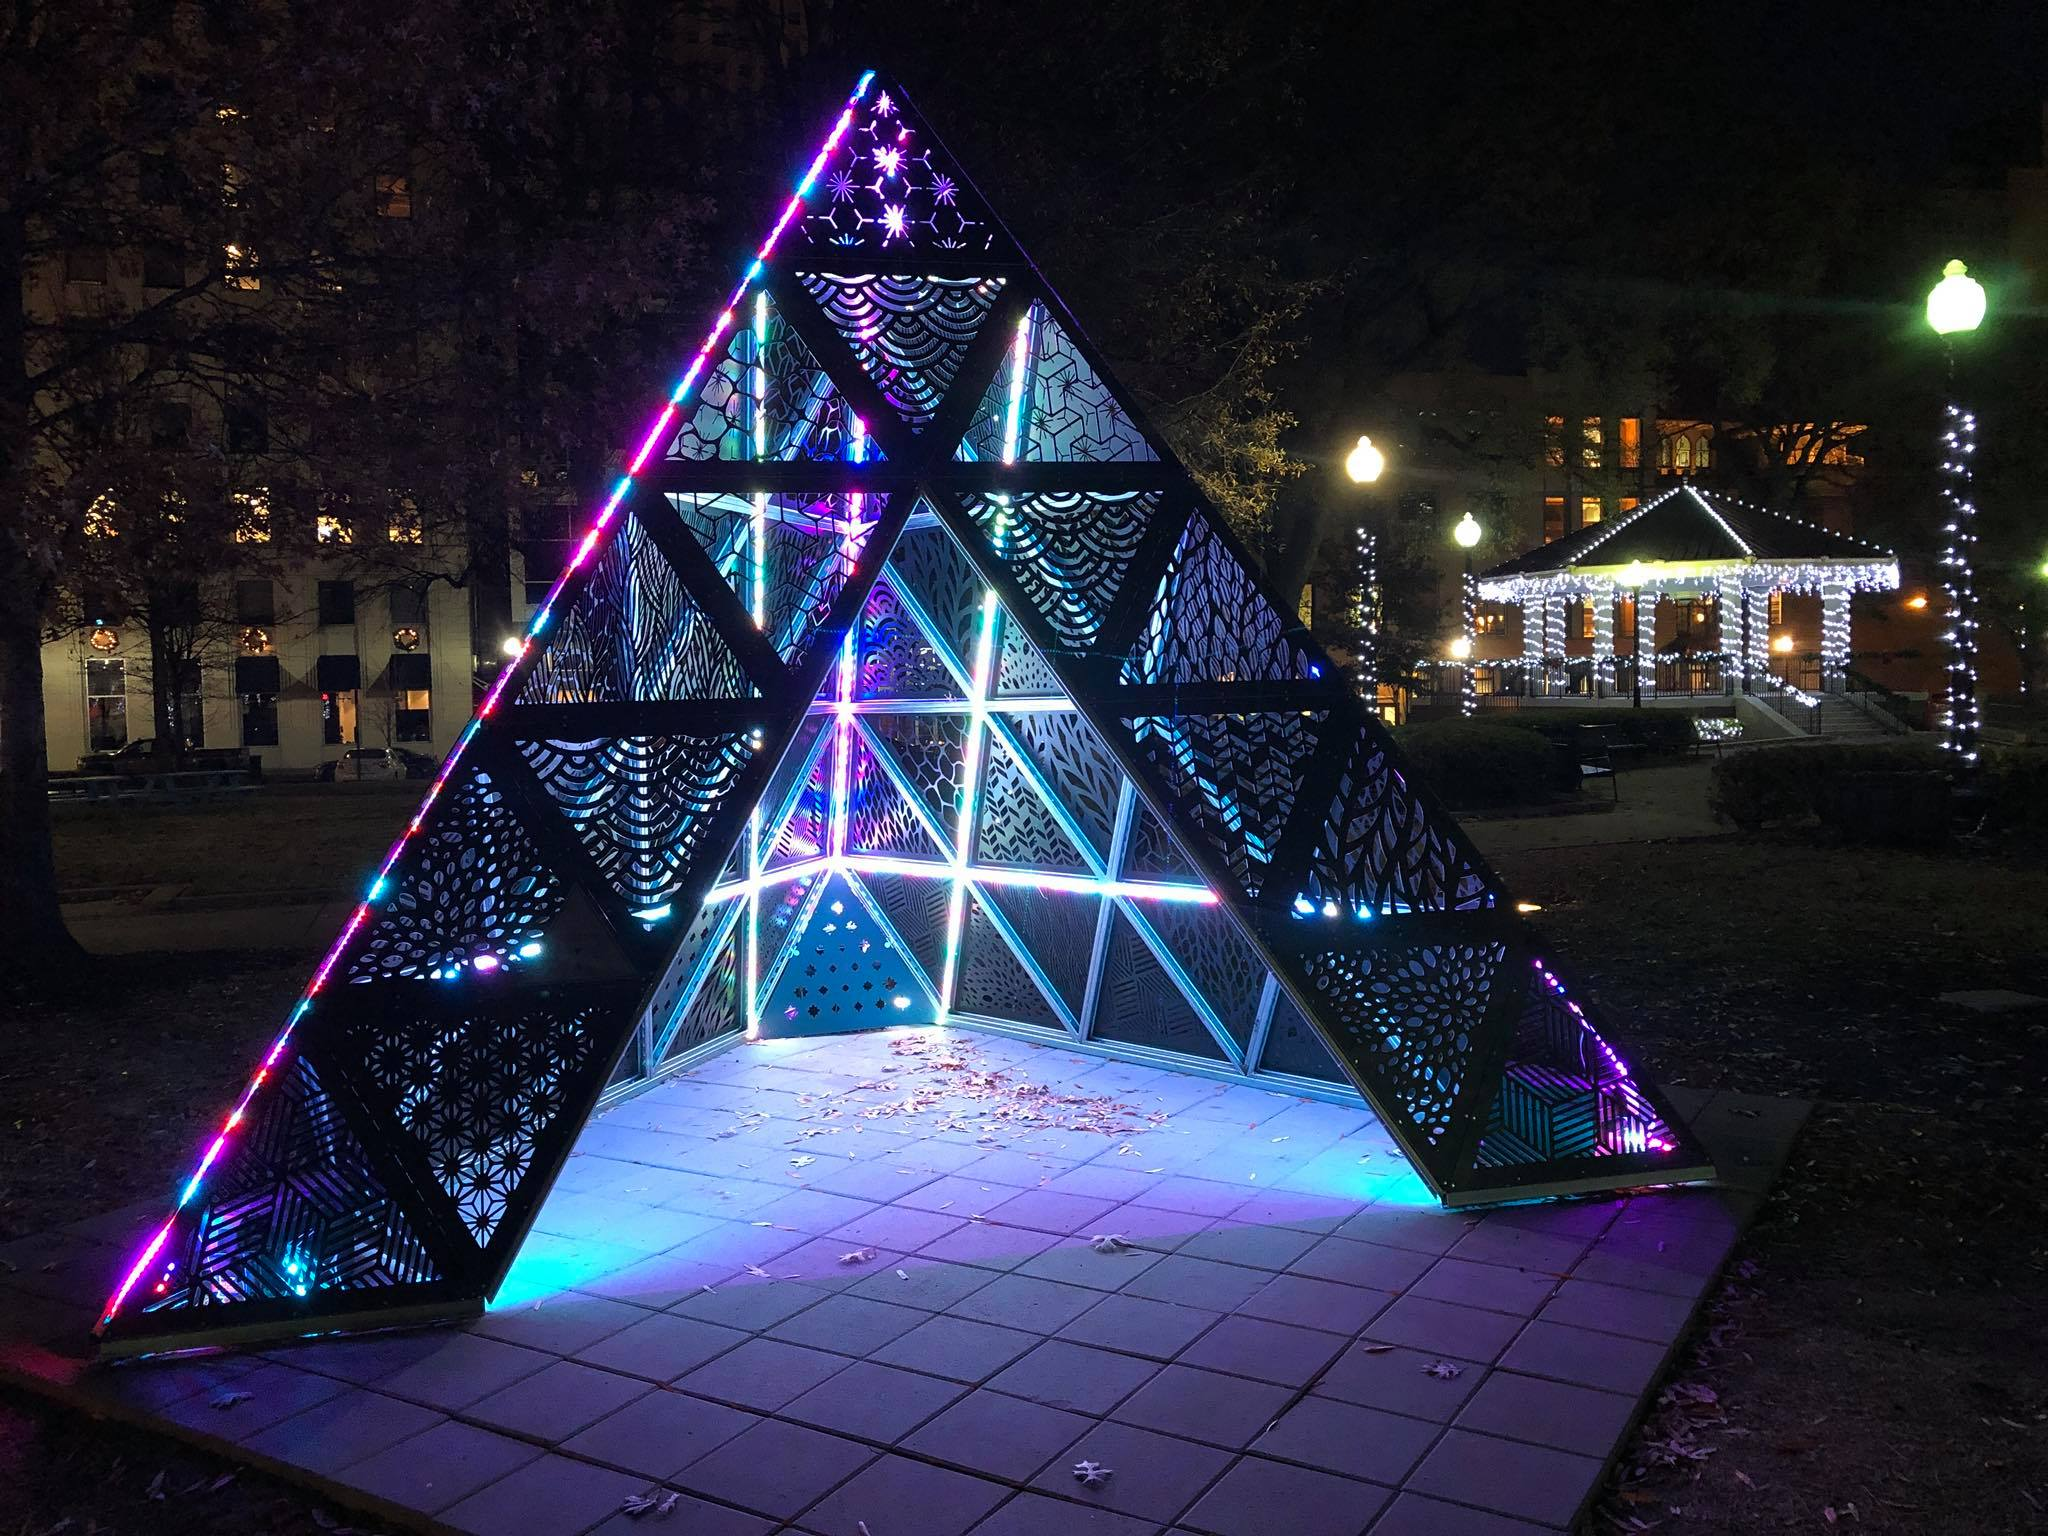 MOD+1+Tetrahedron+by+Christopher+Reyes+in+Court+Square+Downtown+Memphis,+TN.jpg